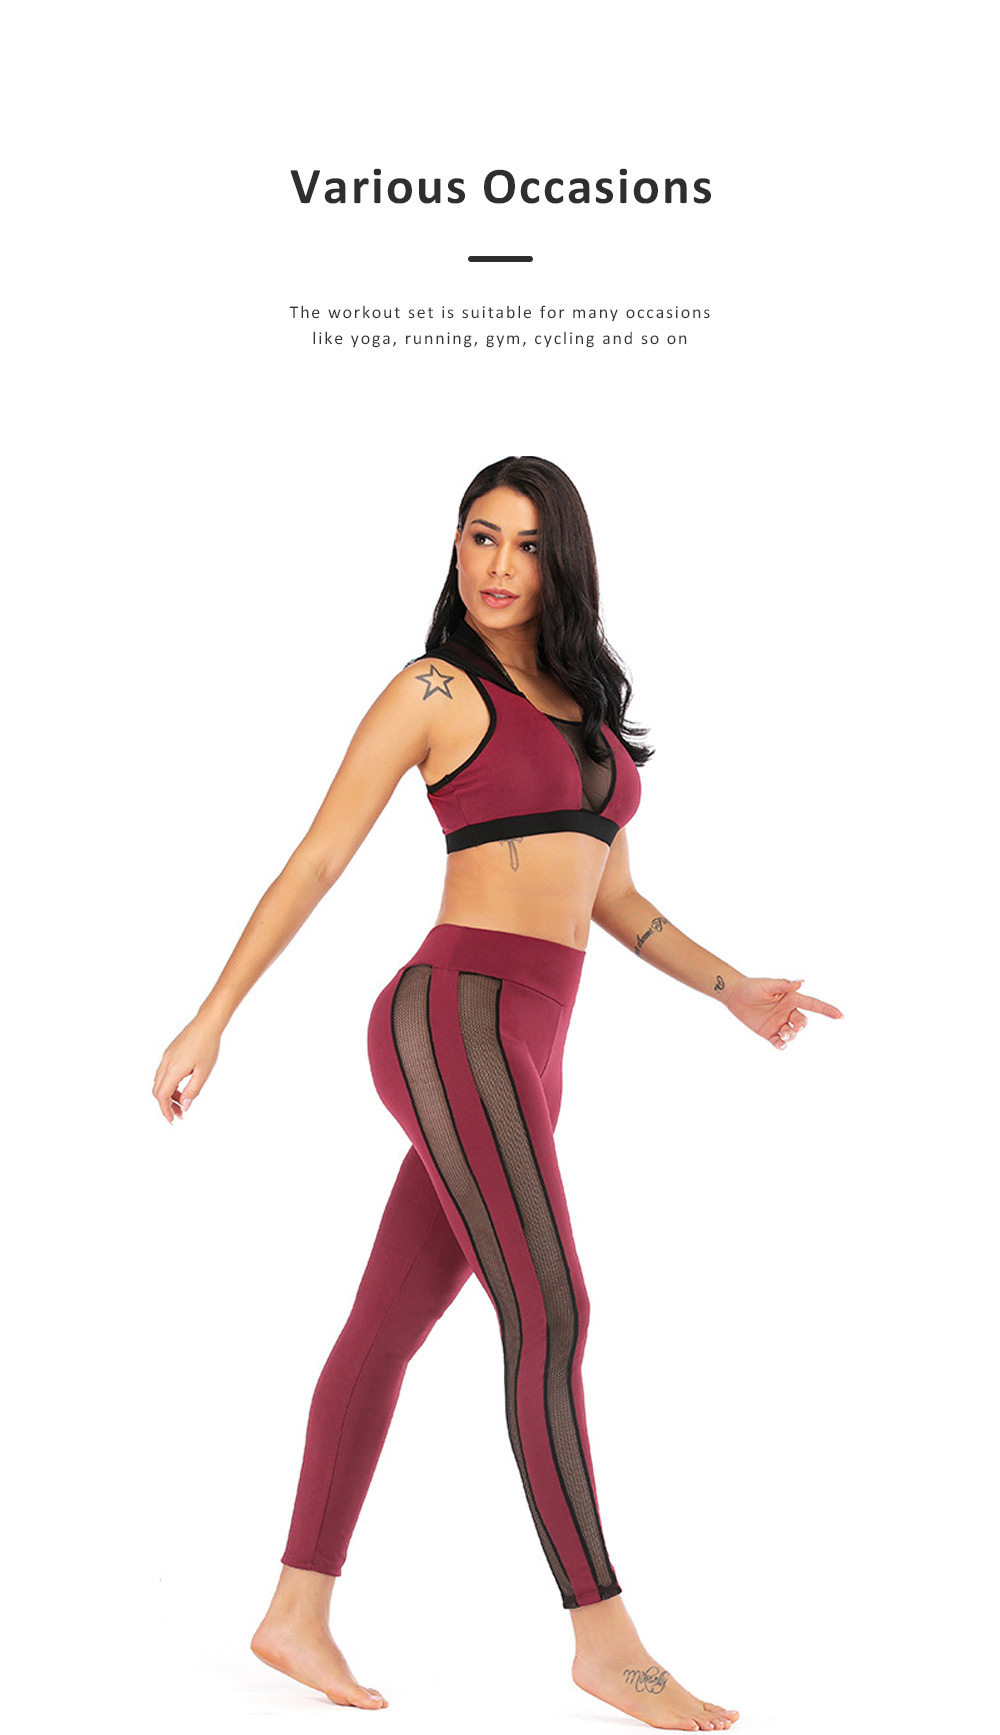 Women Jogging Sport Suit Workout Set Gauze Splicing Stretchy Comfortable 2 Pieces Suits Breathing High Waist Pant & Top Athletic Outfit 5